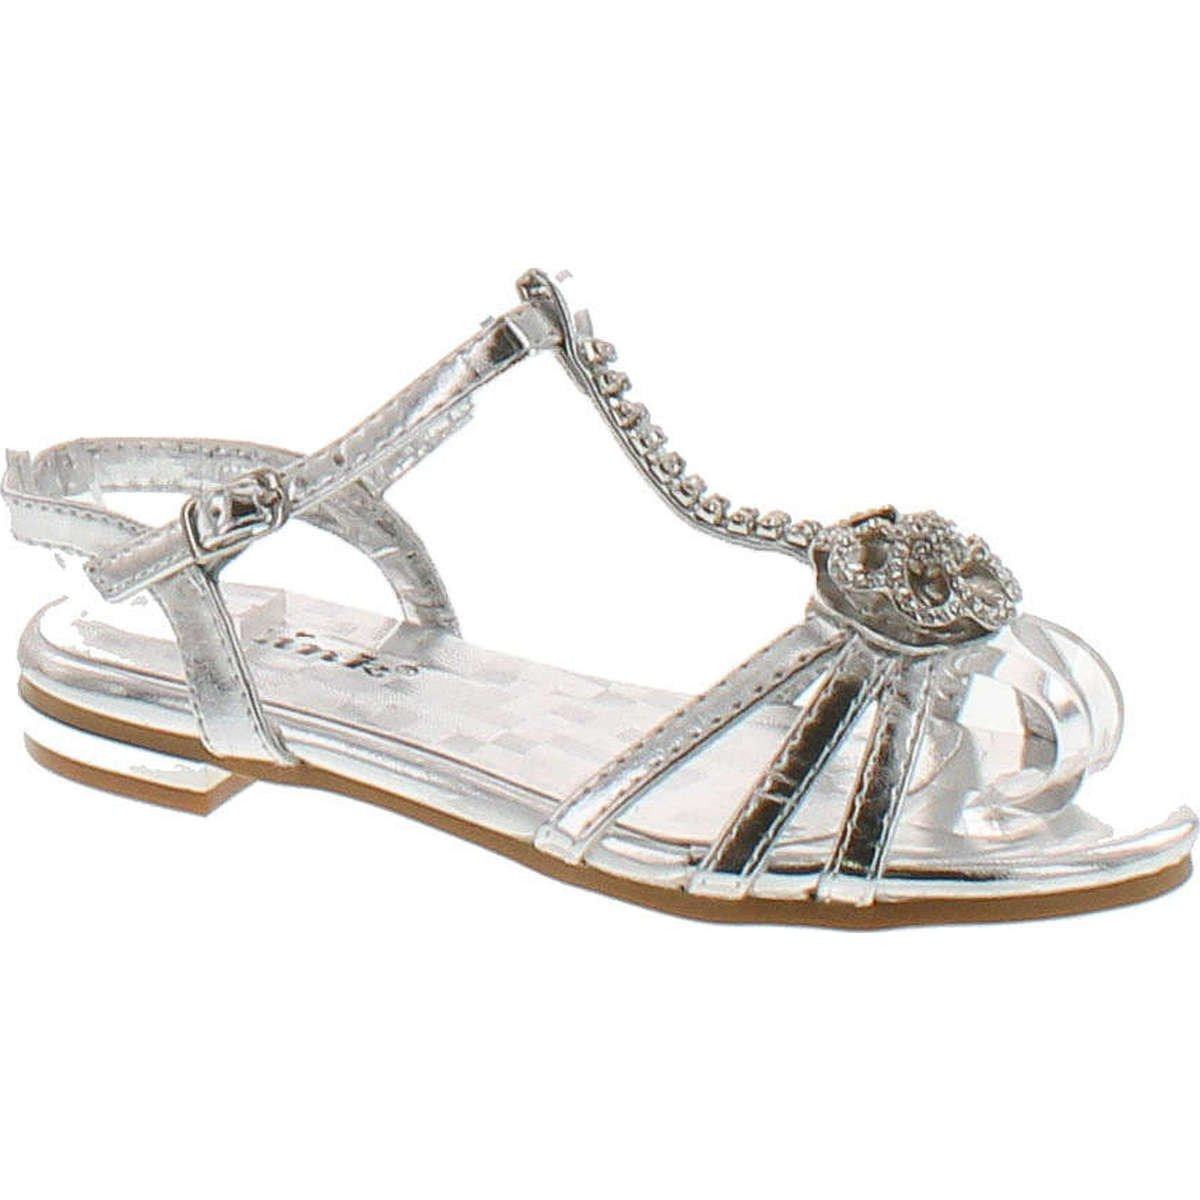 Forever Nora-69K Girls Open Toe Flat Wedding Party Dress Sandal Shoes,Silver,1